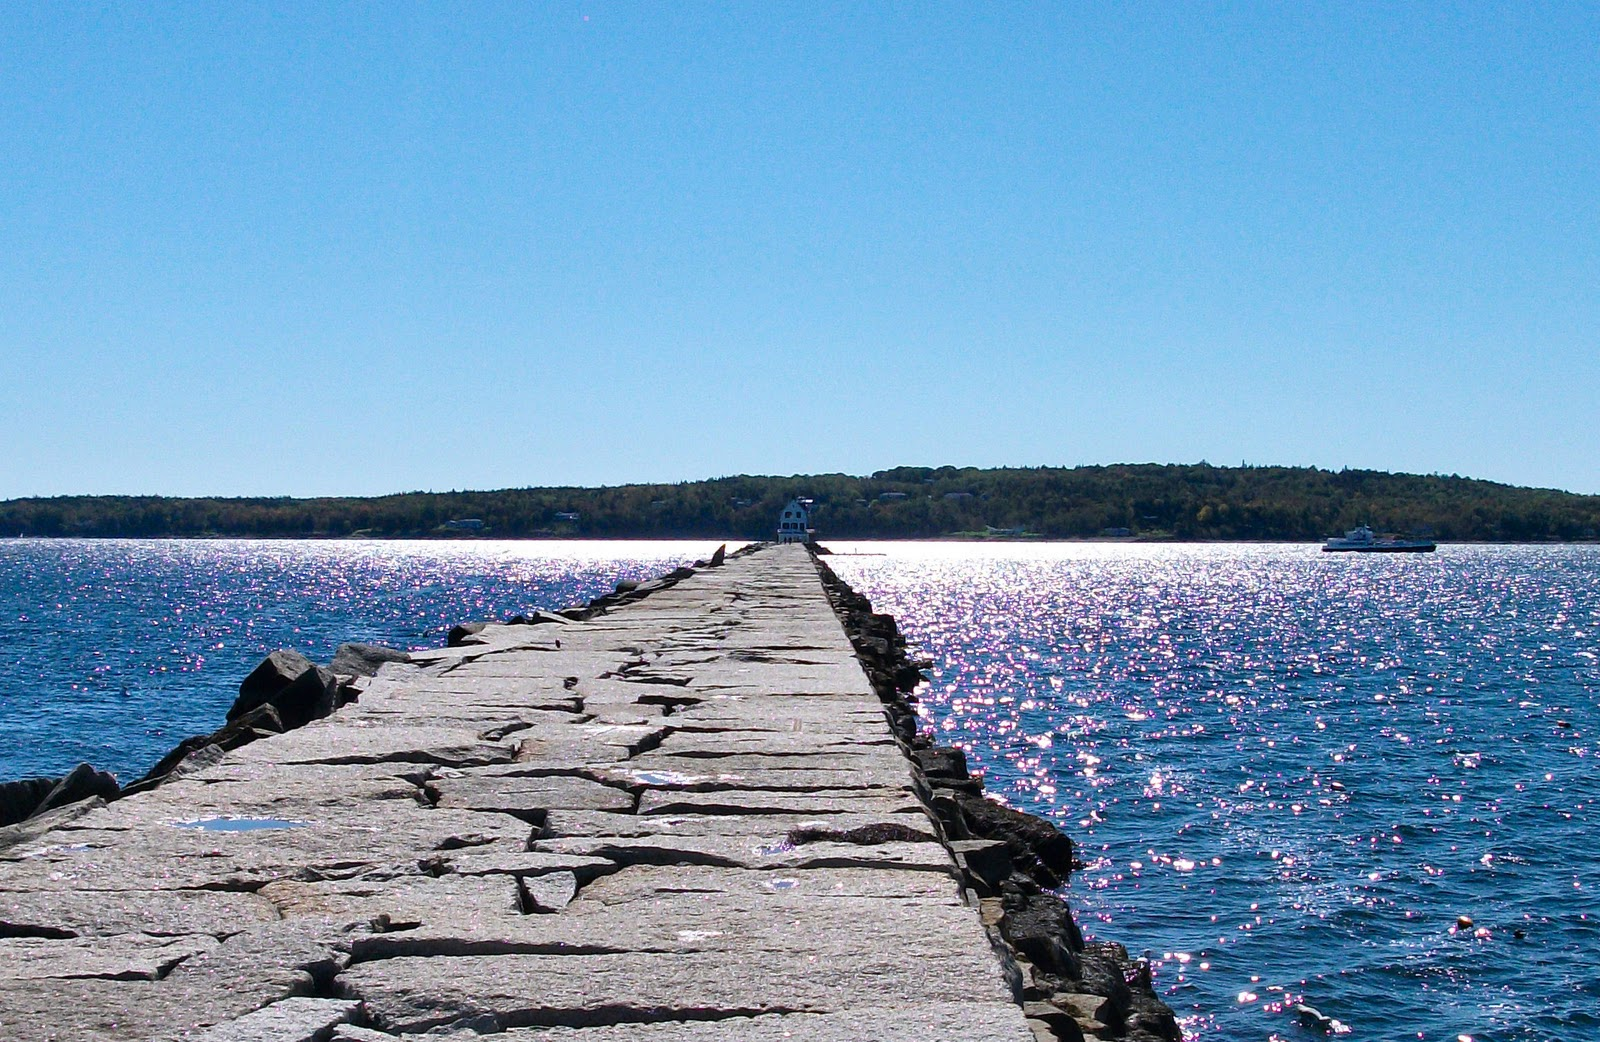 Rockland Marine Corp in Rockland, ME, United States ...  |Rockland